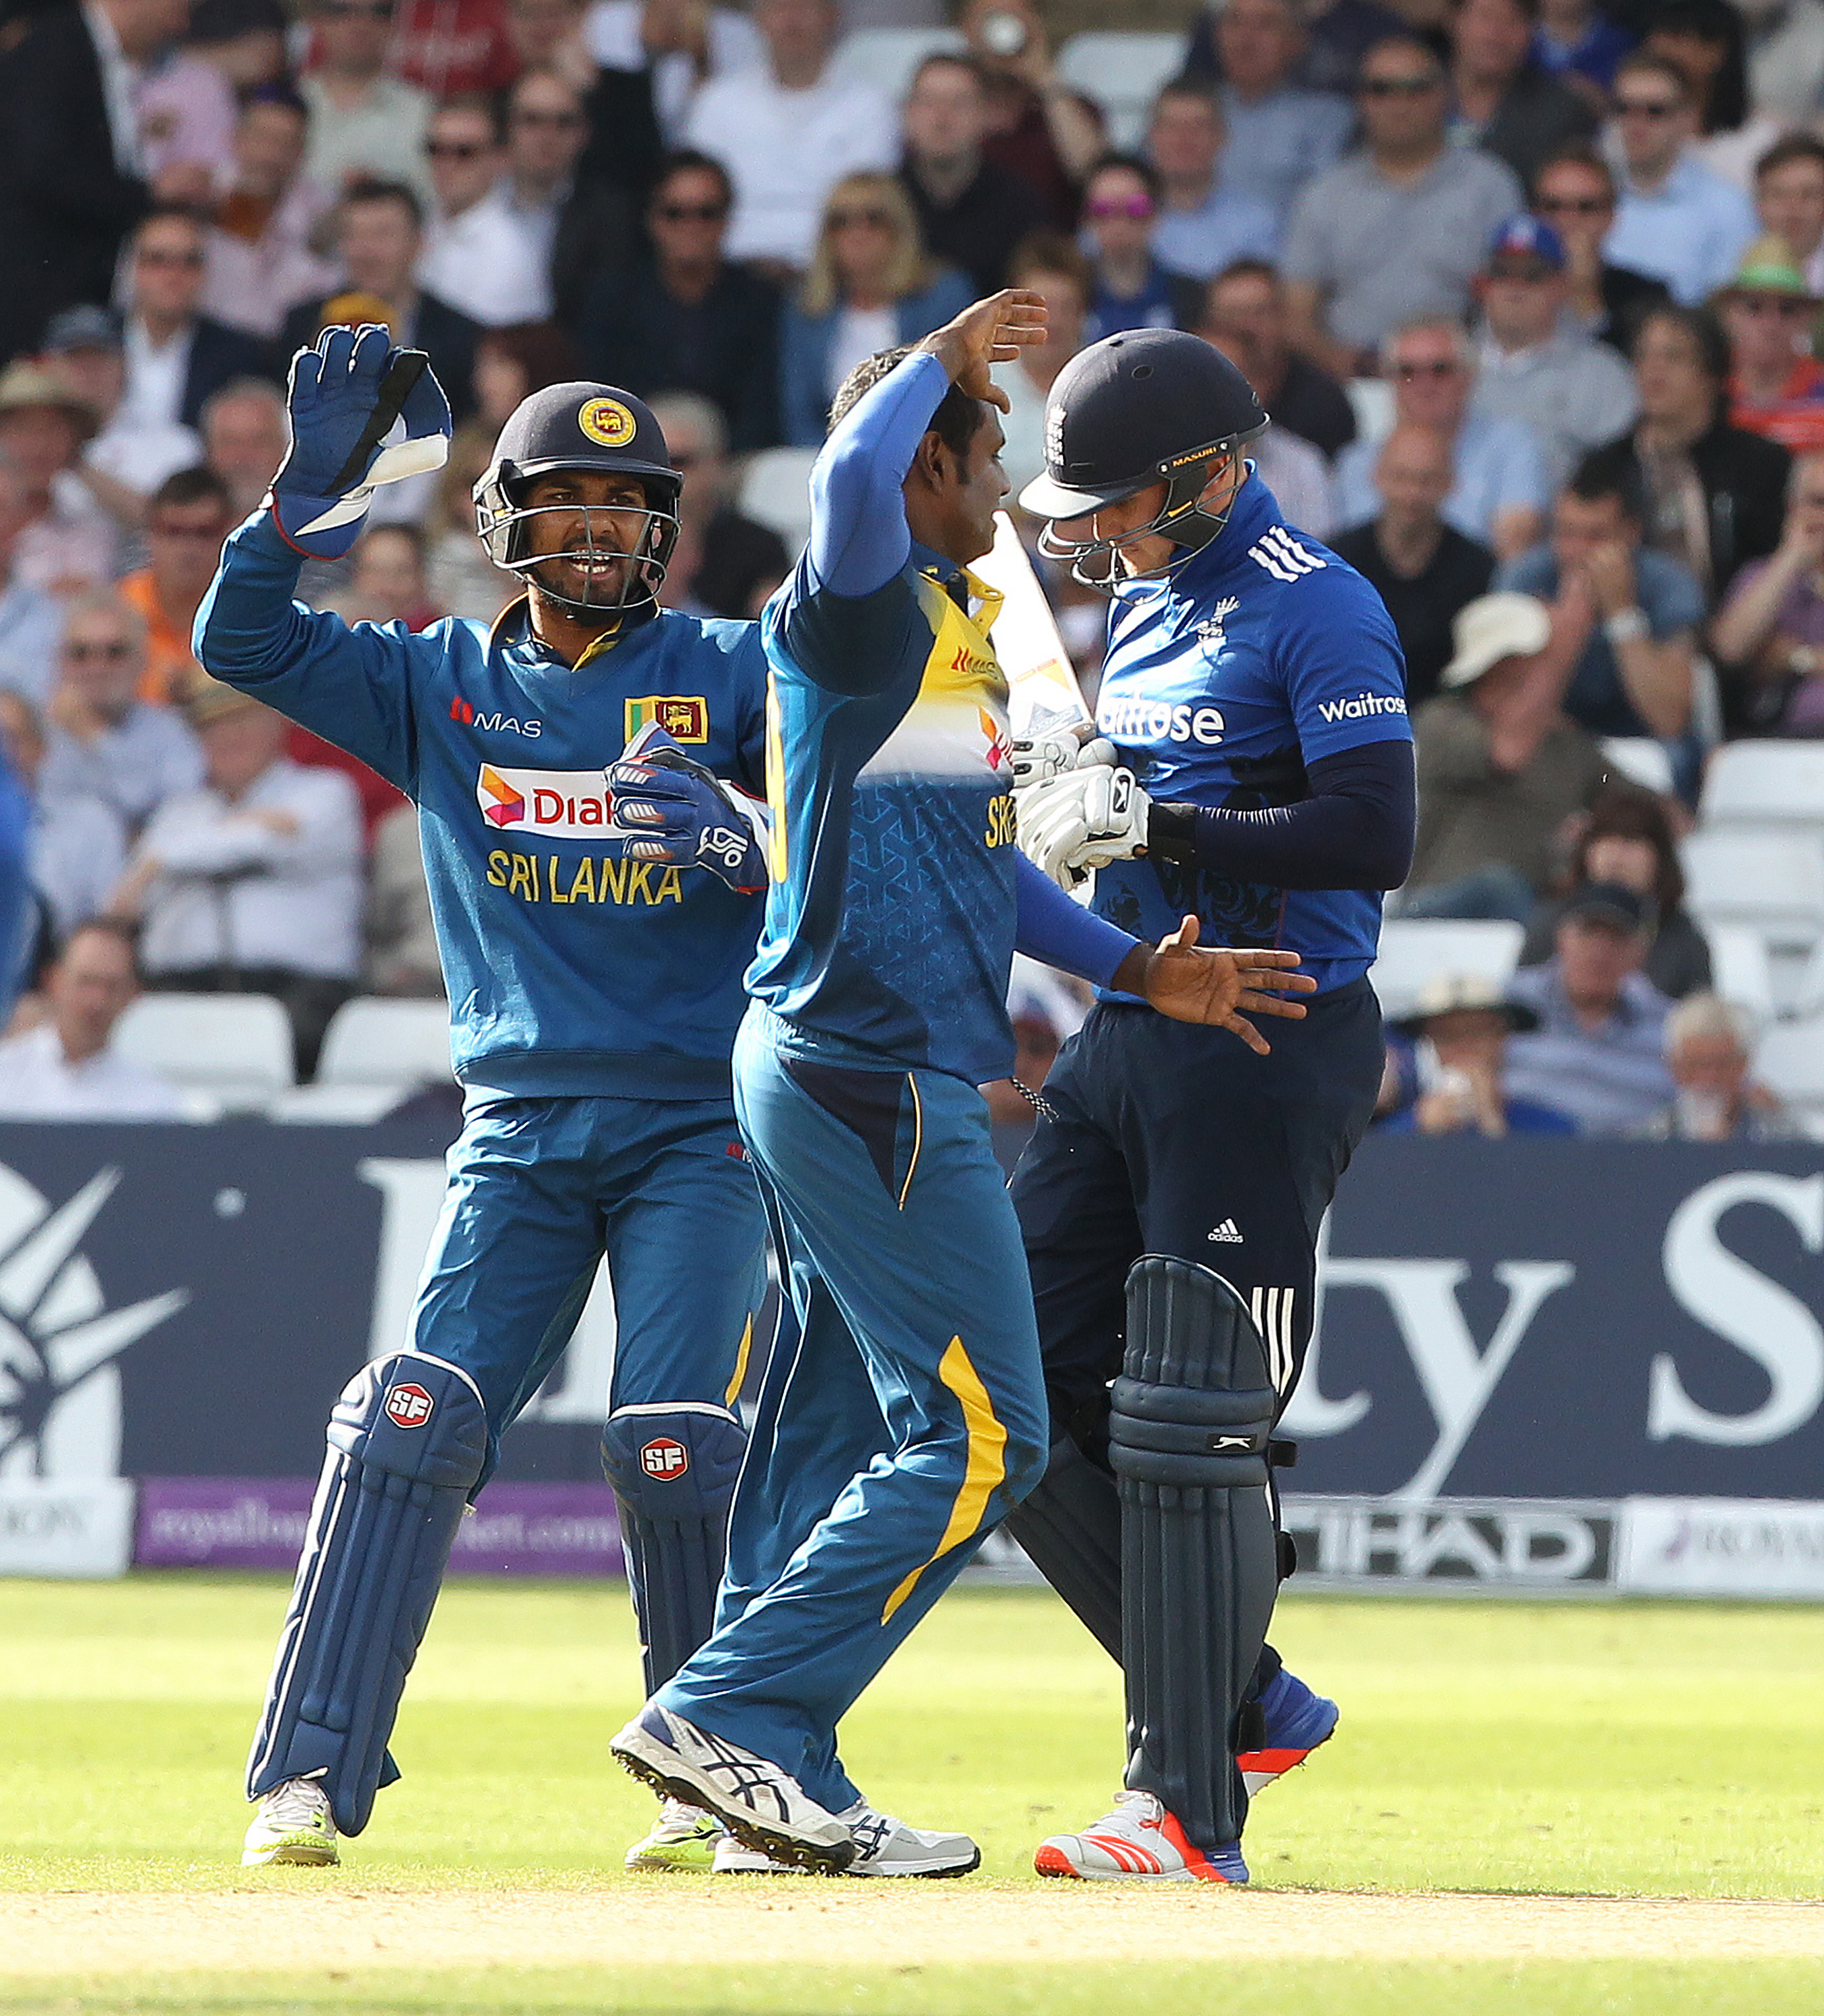 Sri Lanka's captain Angelo Mathews (C) celebrates taking the wicket of Jason Roy (R) during play in the first one day international (ODI) cricket match between England and Sri Lanka at Trent Bridge cricket ground in Nottingham, central England, on June 21, 2016. Sri Lanka captain Angelo Mathews top-scored with 73 as his side were held to 286 for nine by England in the first one-day international in Nottingham on Tuesday. / AFP PHOTO / Lindsey PARNABY